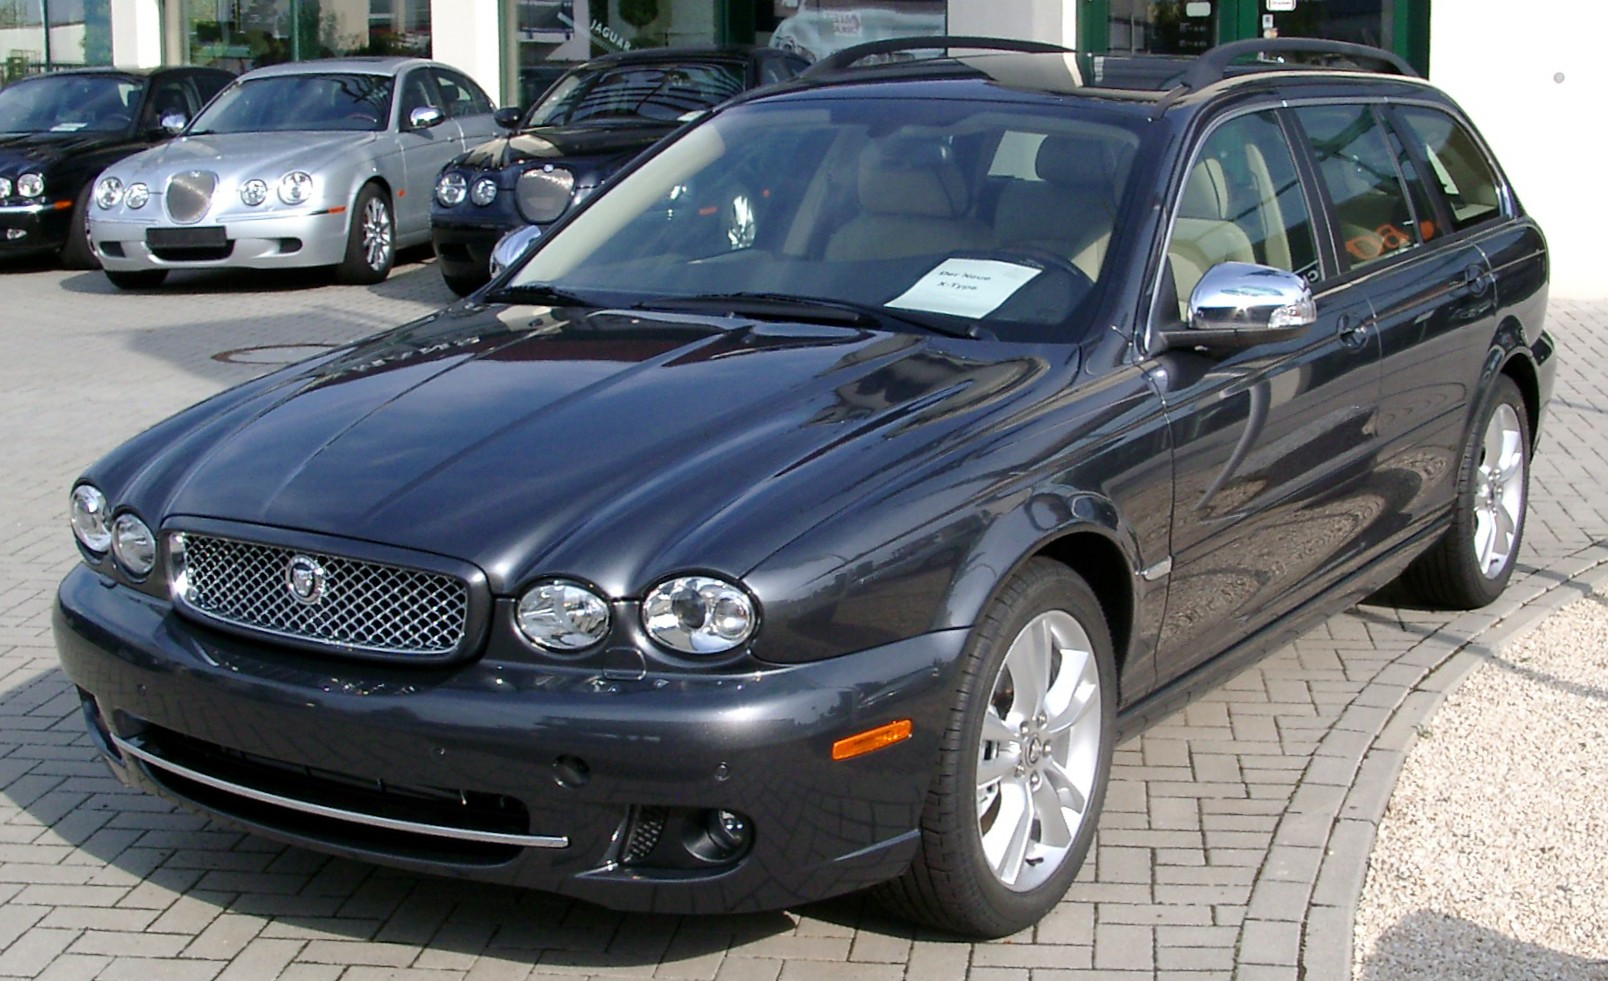 breed design xj sedan generation different cars major jaguar than redesign a features and luxury its sfgate driving article predecessor s models new